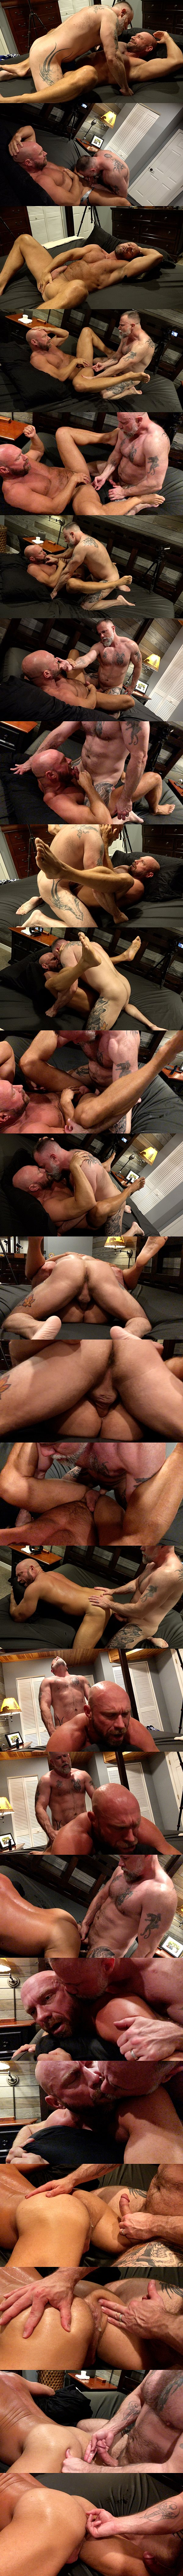 Musclebearporn - hairy muscle bear Liam Angell barebacks bald macho daddy Killian Knox in missionary and doggy style before he creampies Killian with a thick daddy load in Feeding Daddy Some Boy Load 02